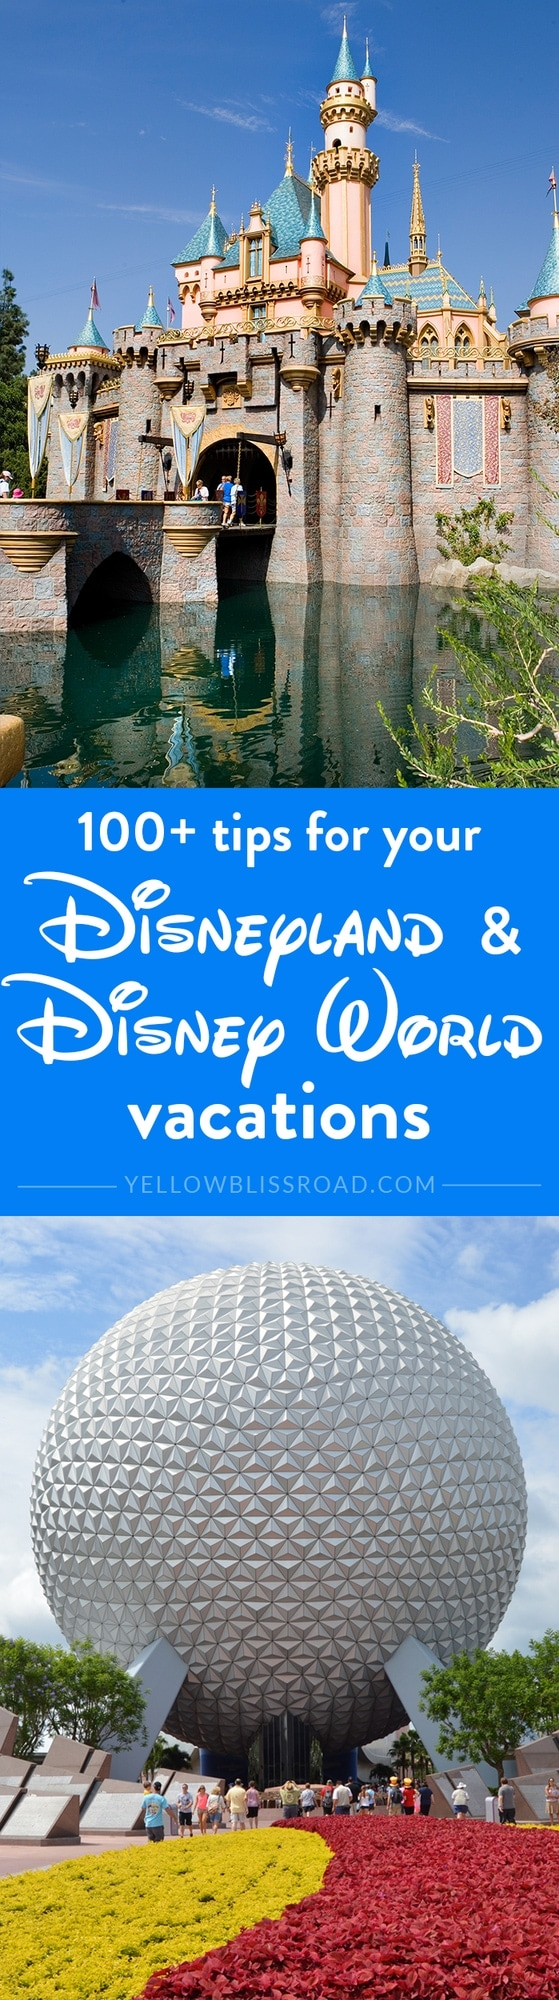 Over 100 Tips to help plan your family's Disneyland or Disney World vacation - from what to where, to what to eat, to how to shop!